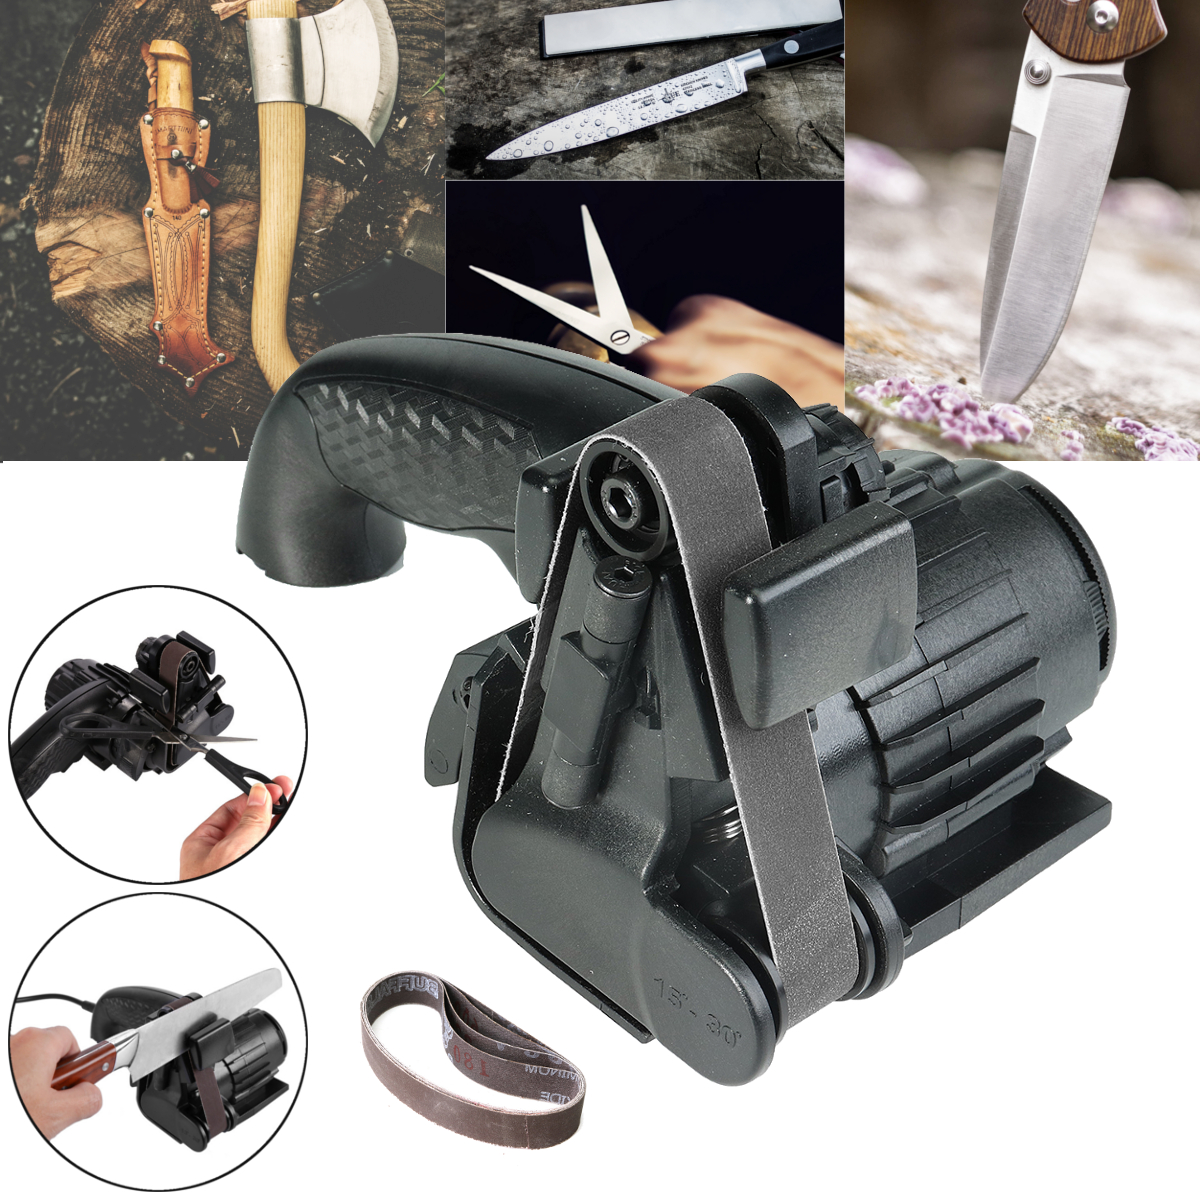 Electric Knife Sharpener Speedy Automatic Self-abrasive Onion Edition Knife Sharpener Knives Sharpening Kitchen Tools Power Tool накладной светильник toplight rosamond tl9421y 01wh